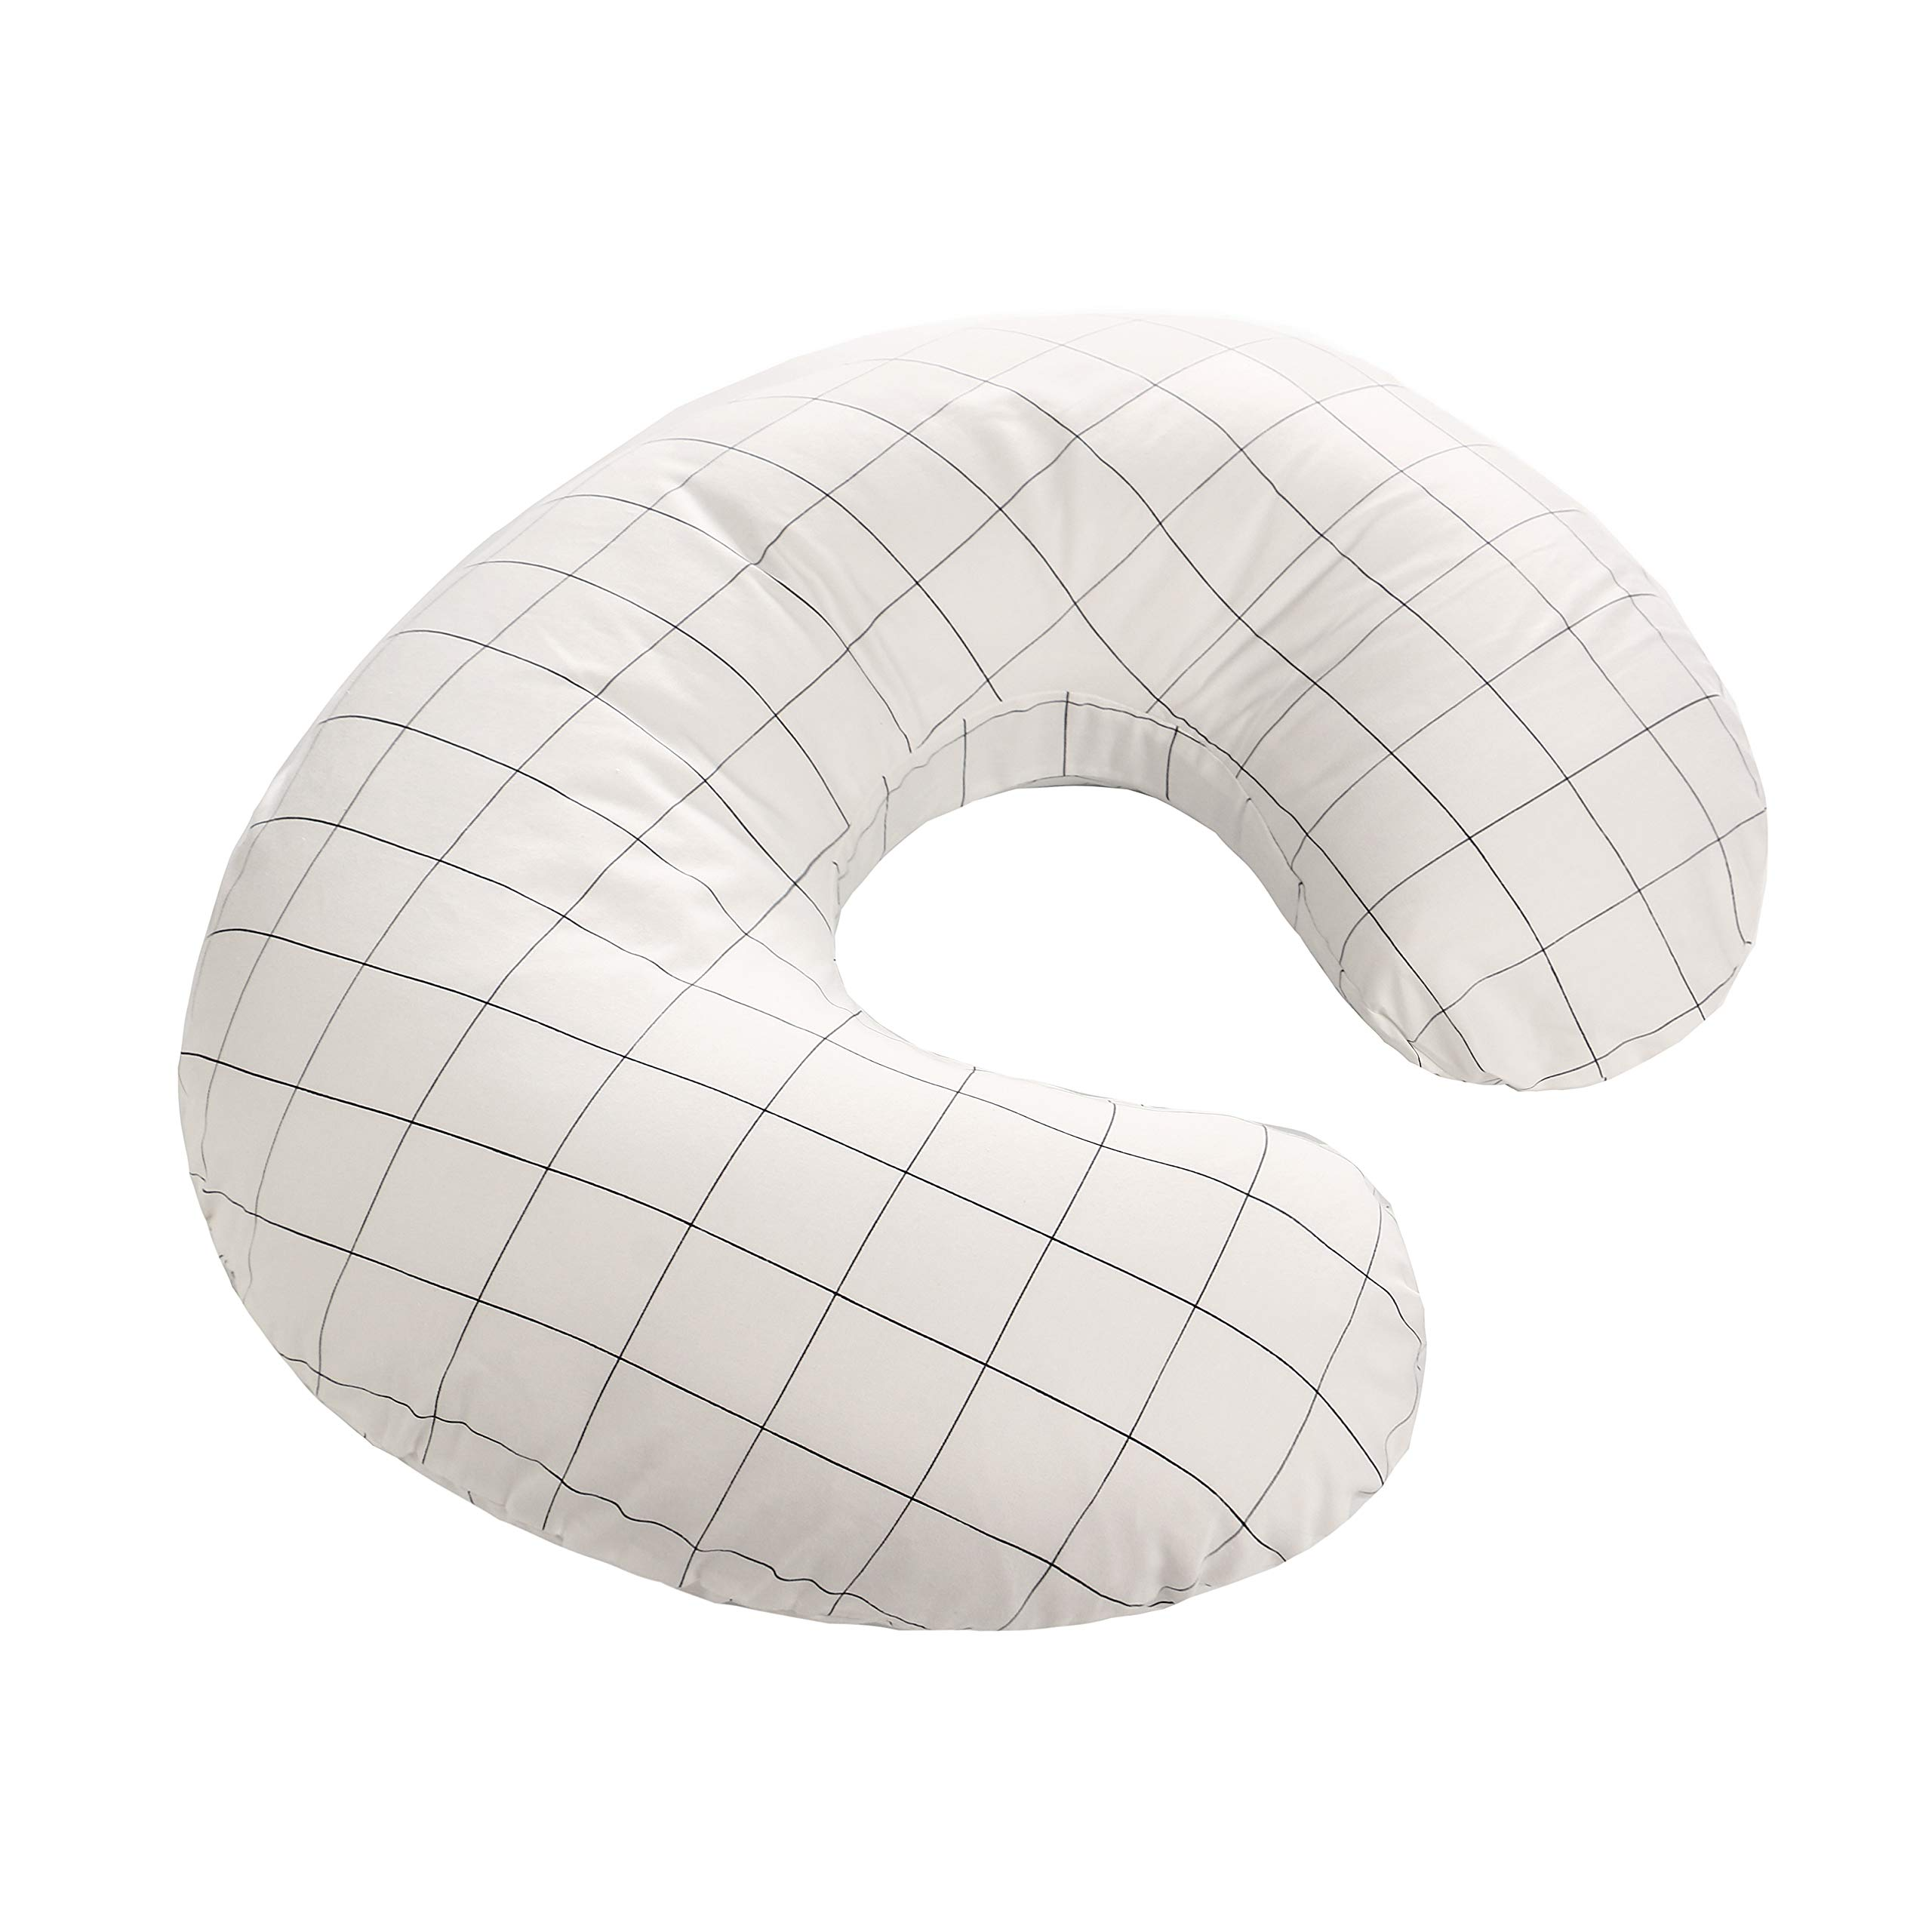 LAT Nursing Pillow Cover,100% Natural Cotton Breastfeeding Pillow Slipcover,Extra Soft and Snug on Baby Nursing Pillow(White Grid) by LAT LEE AND TOWN